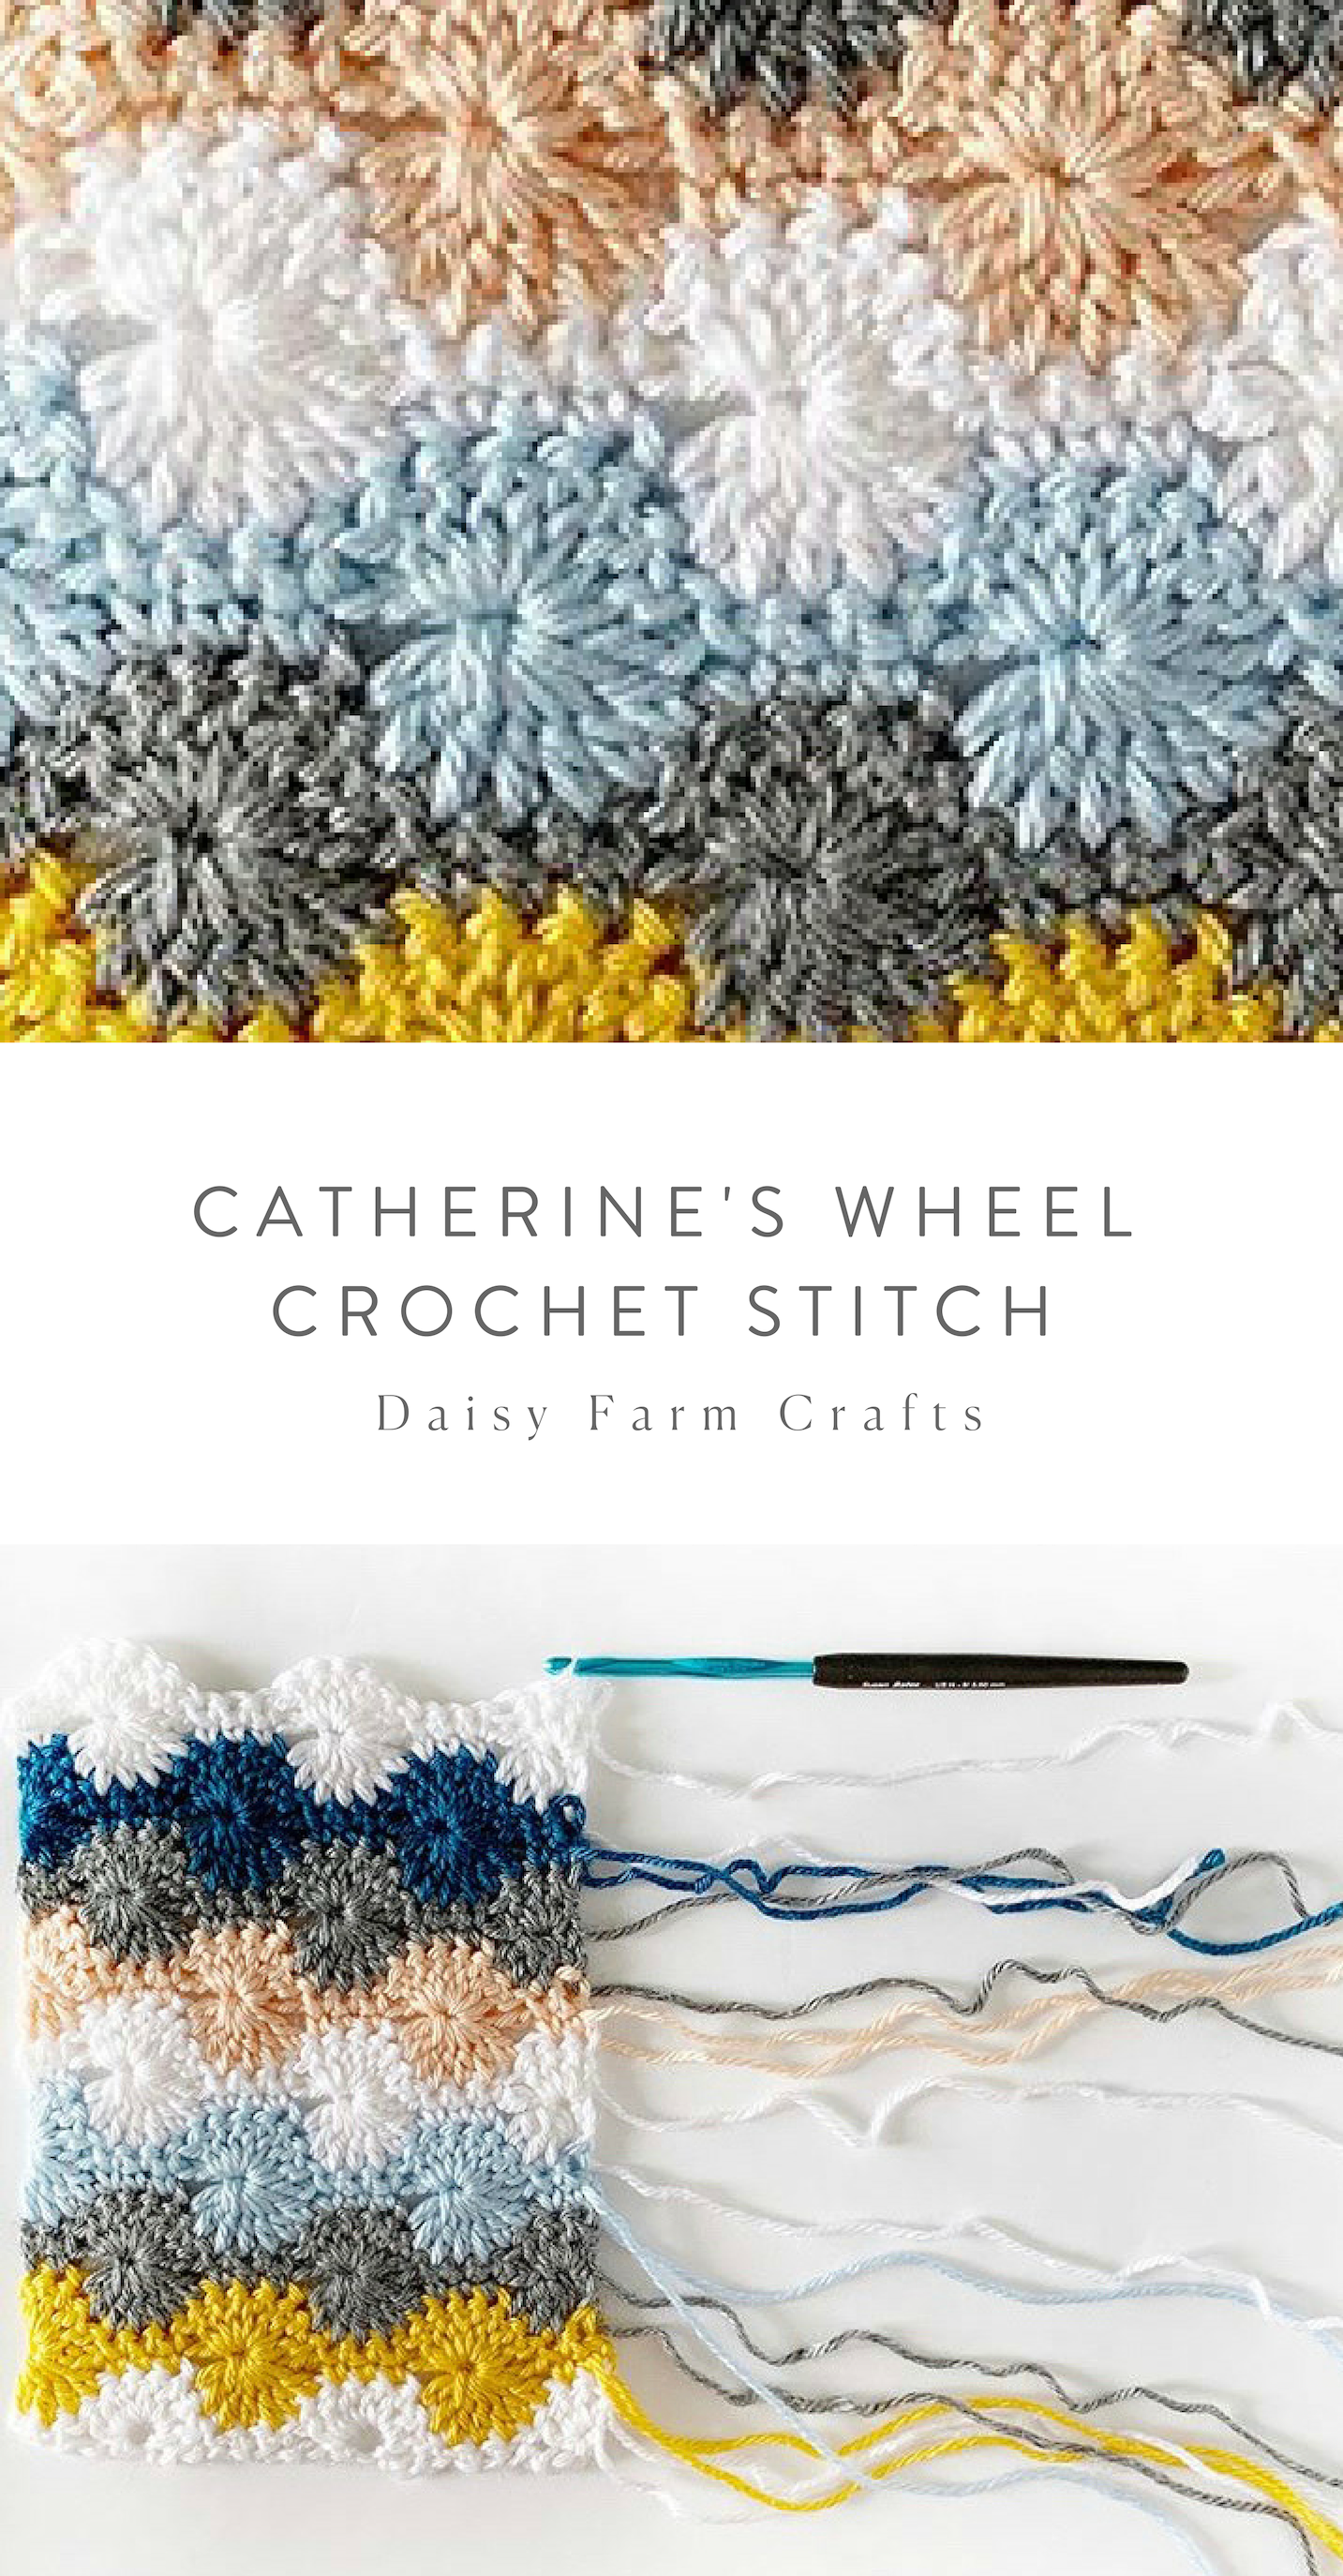 Catherine's Wheel Crochet Stitch #crochetpatterns